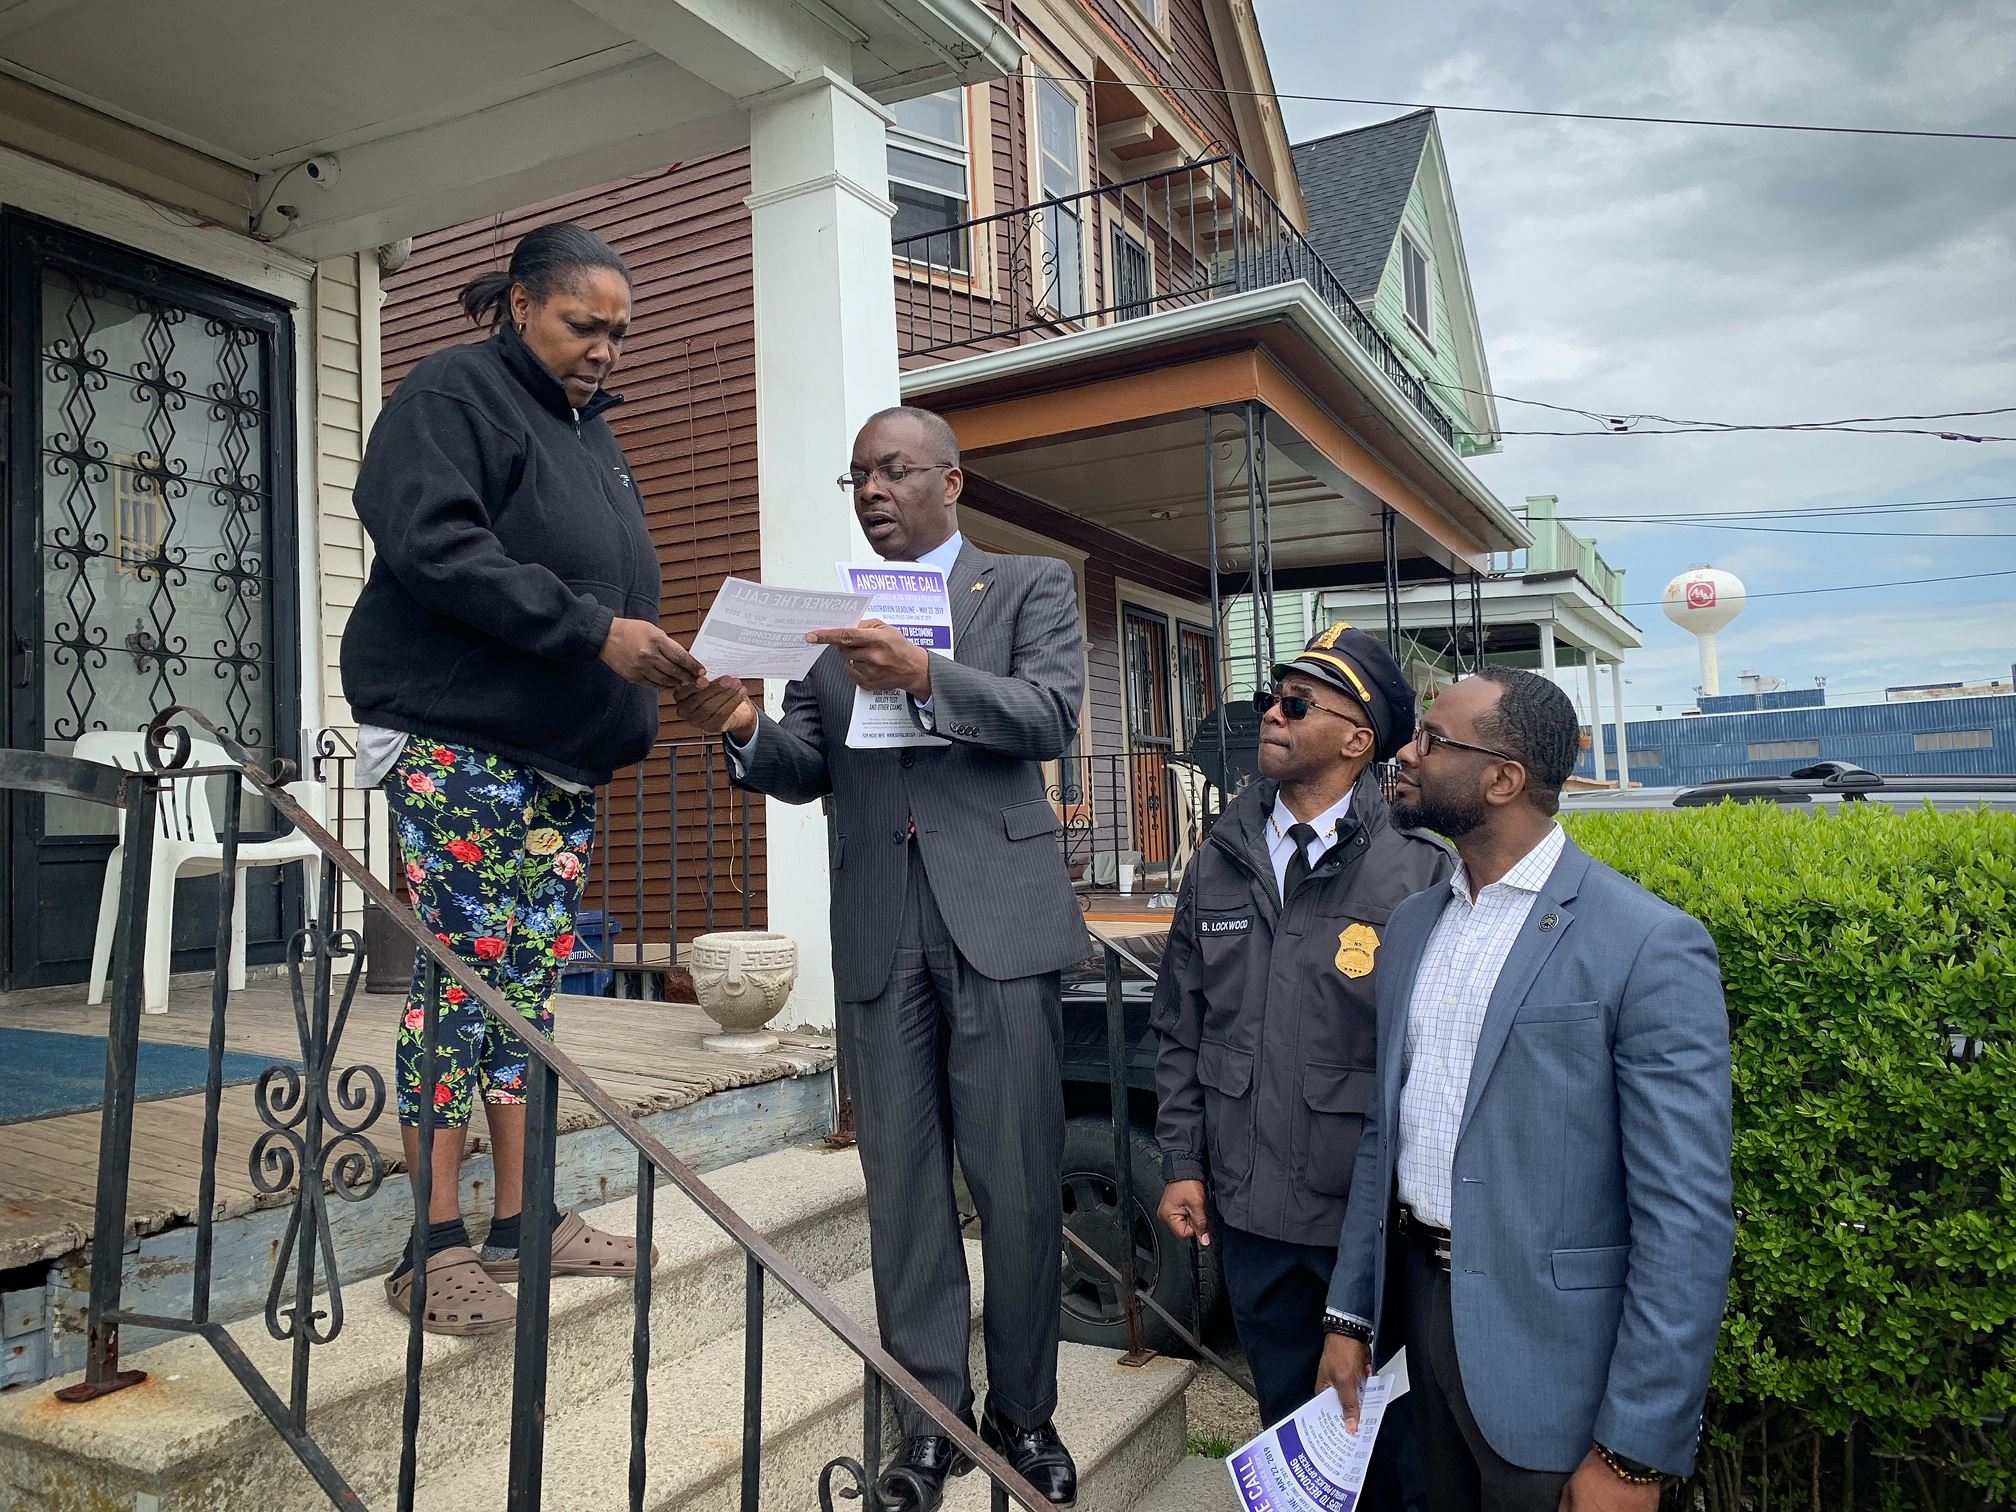 Clean Sweep 2019 Mayor on Porch